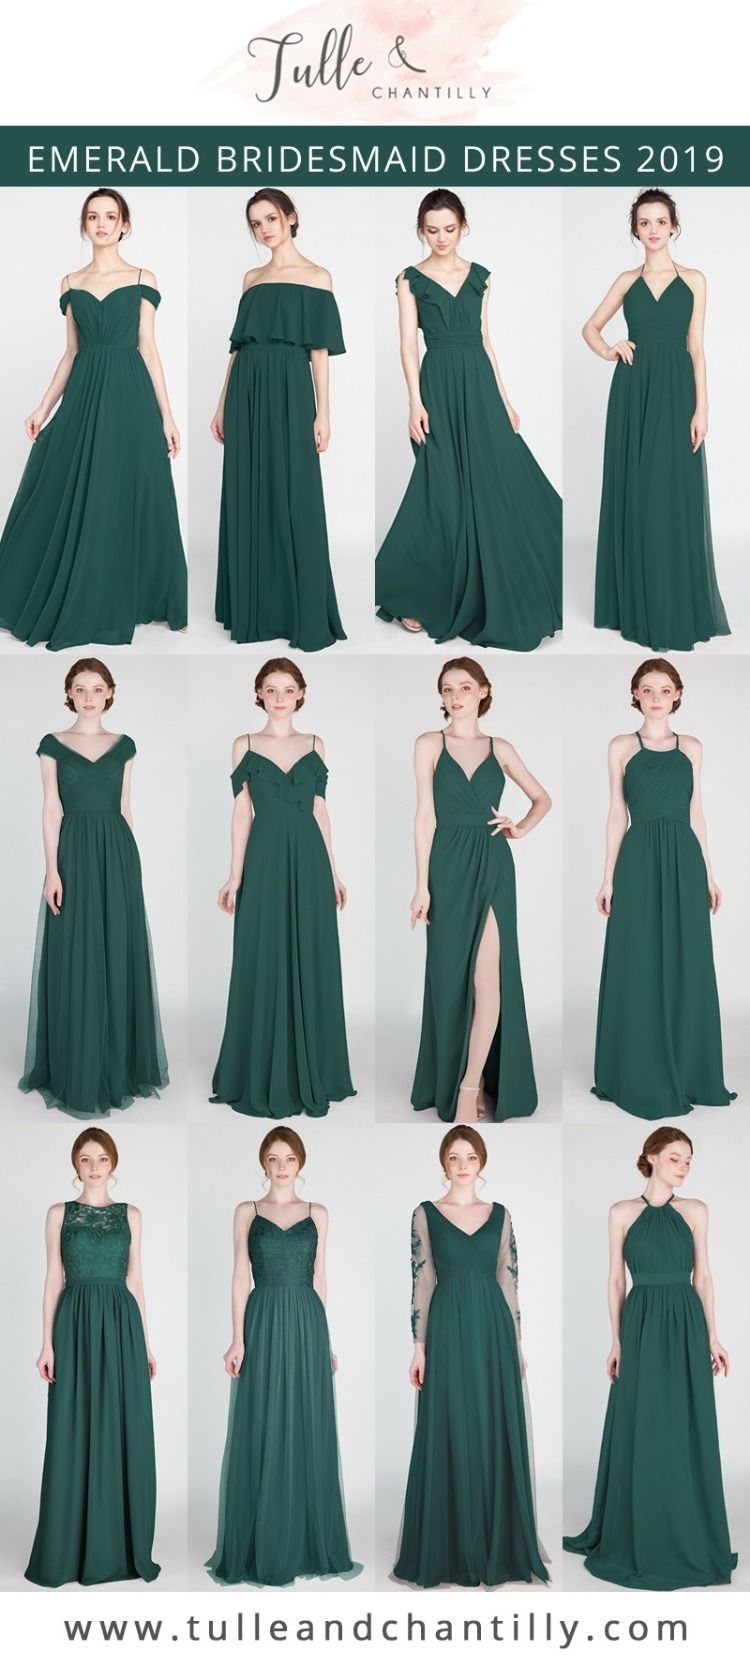 Long \u0026 Short Bridesmaid Dresses: $80